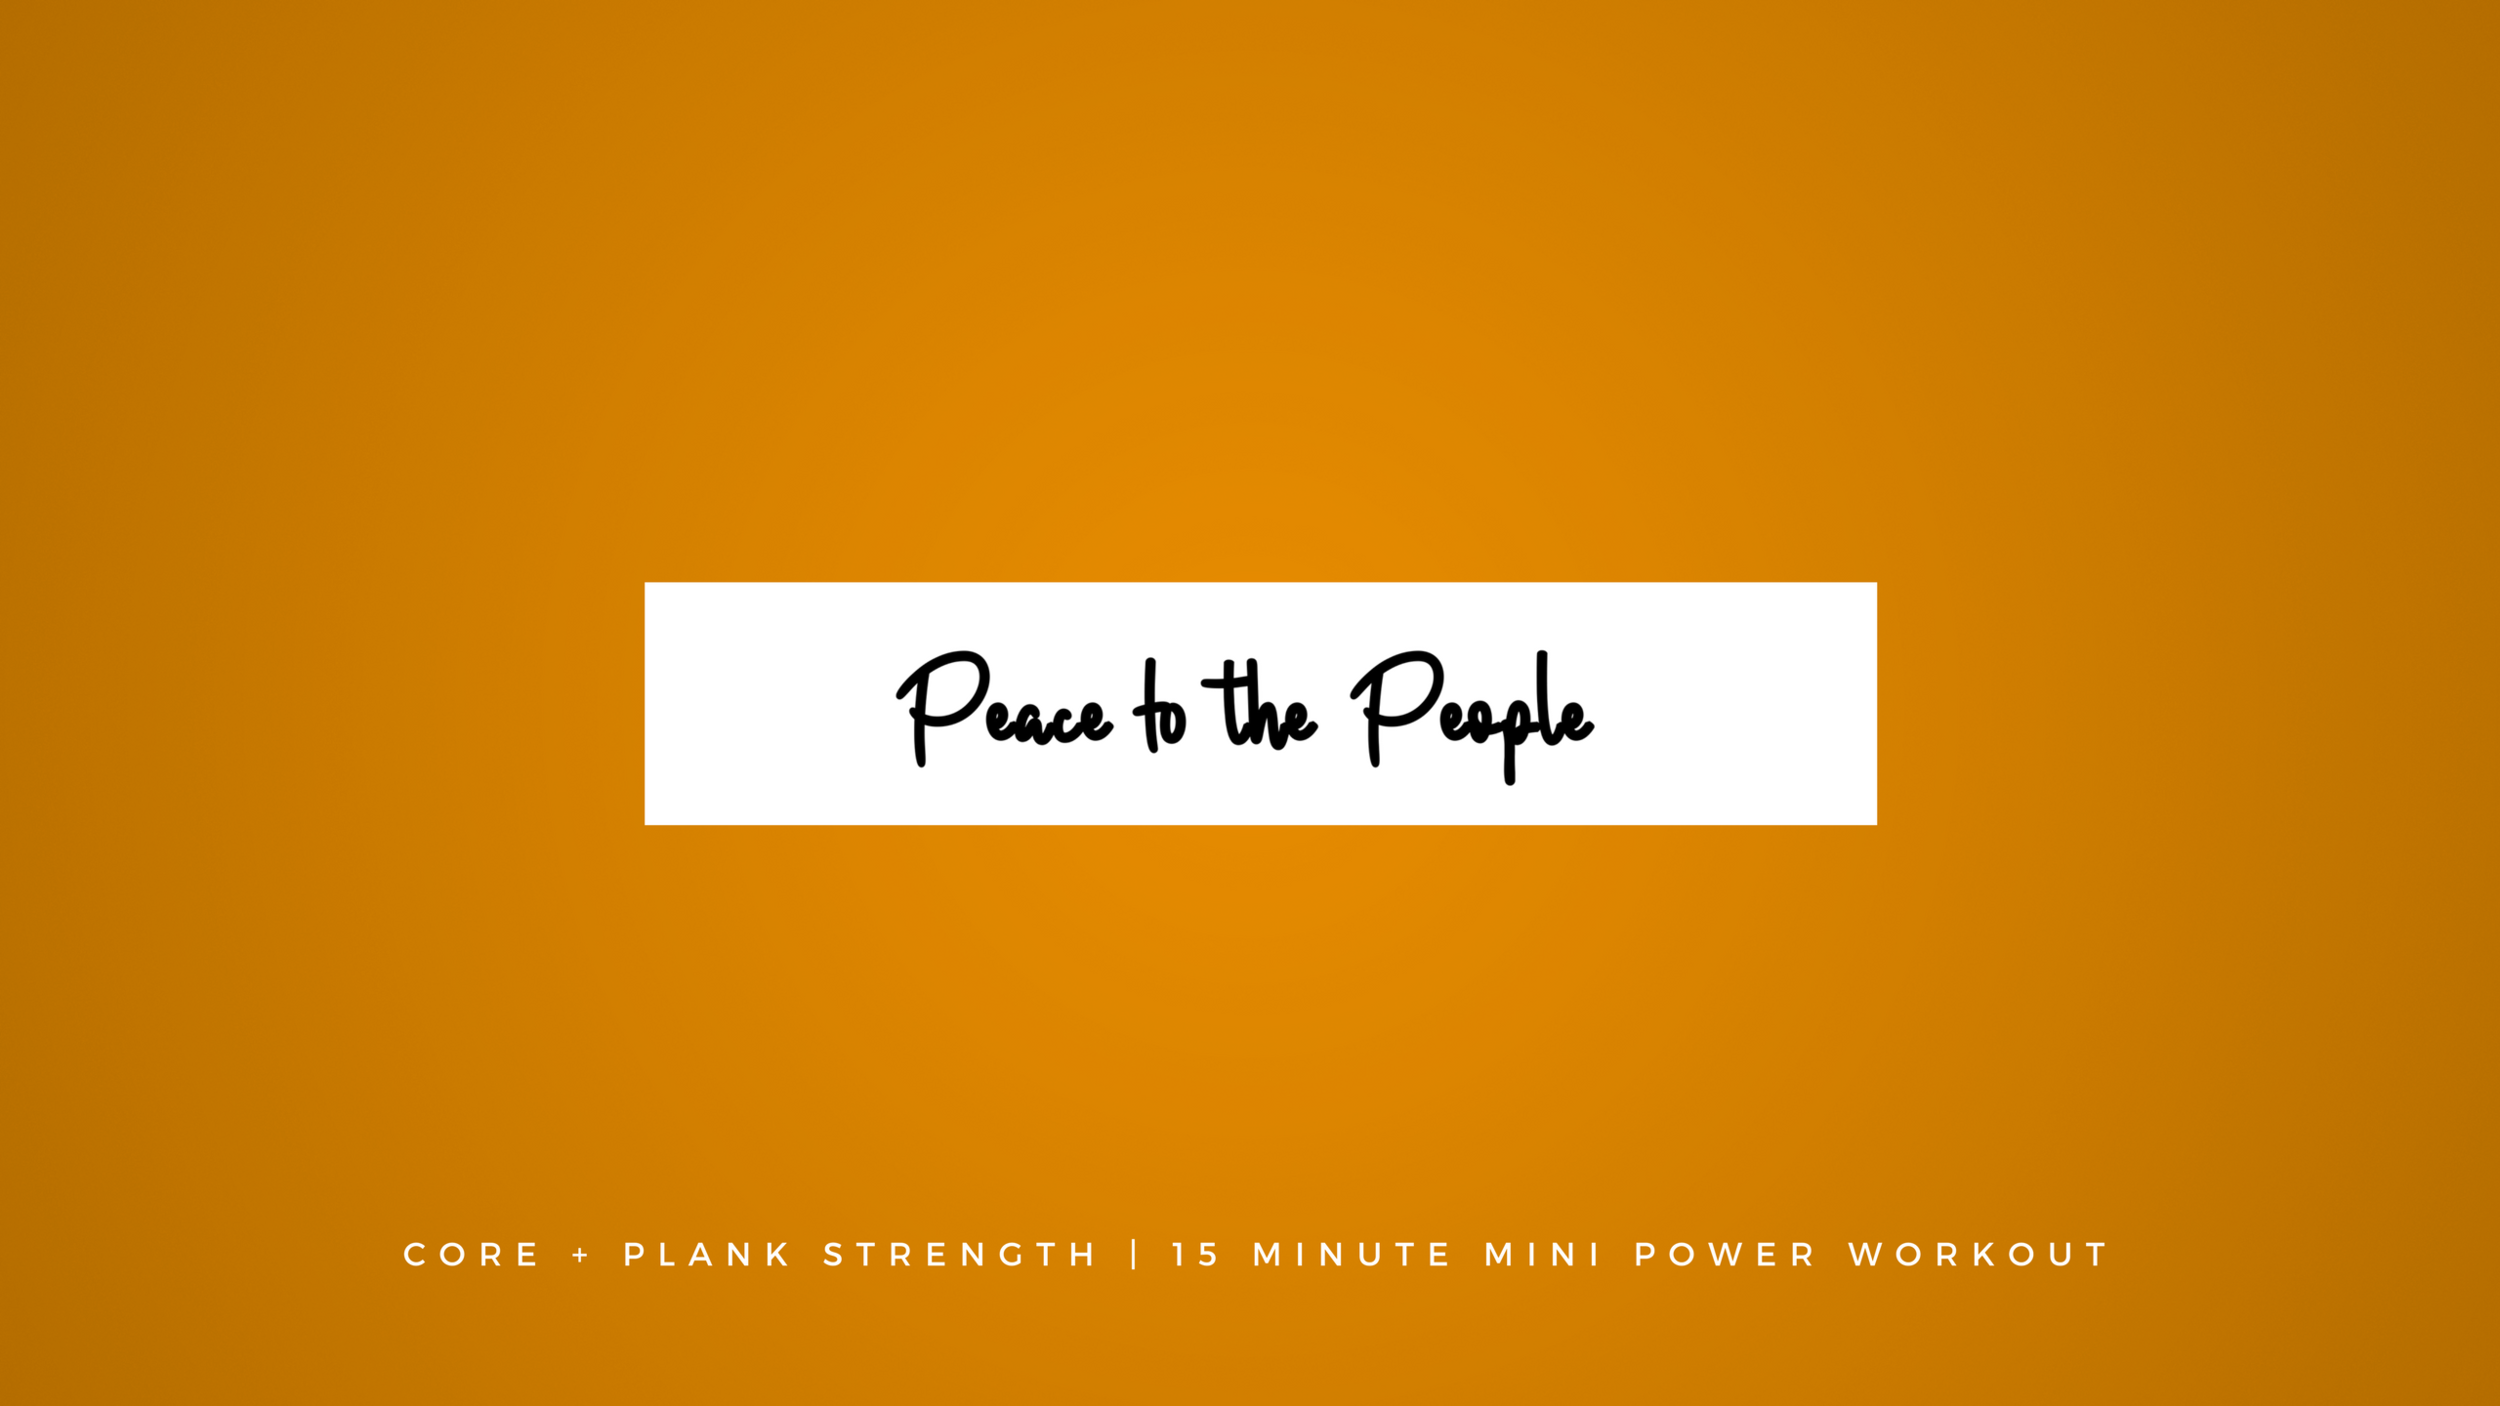 Core + Plank Strength Mini Power Workout